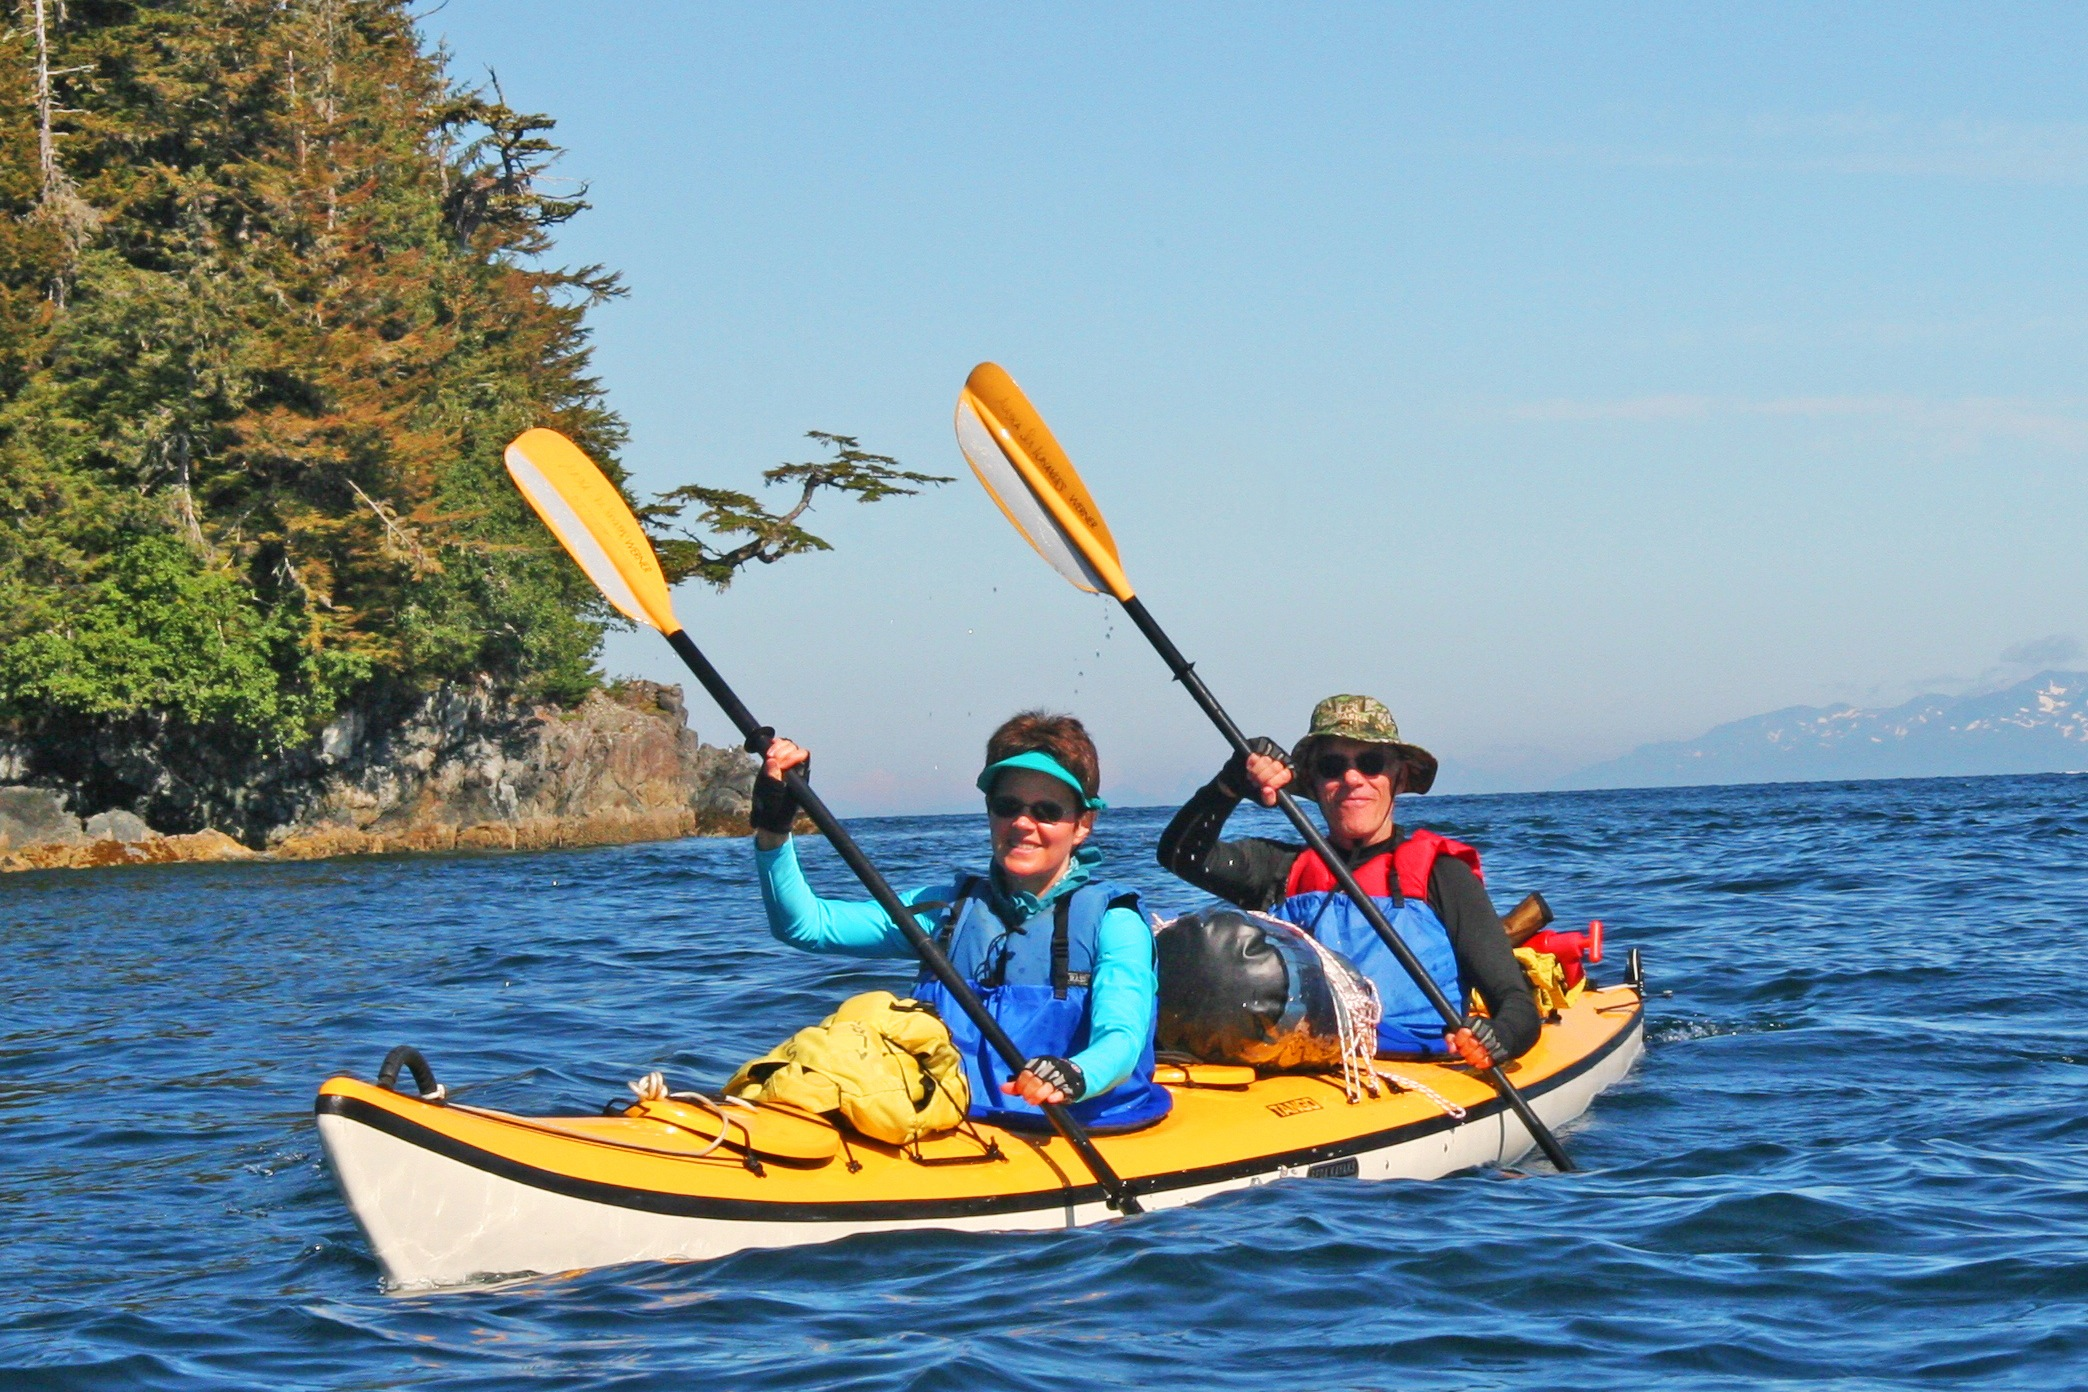 A Couple In Tandem Sea Kayak On Deep Blue Water Near Rocky Island With